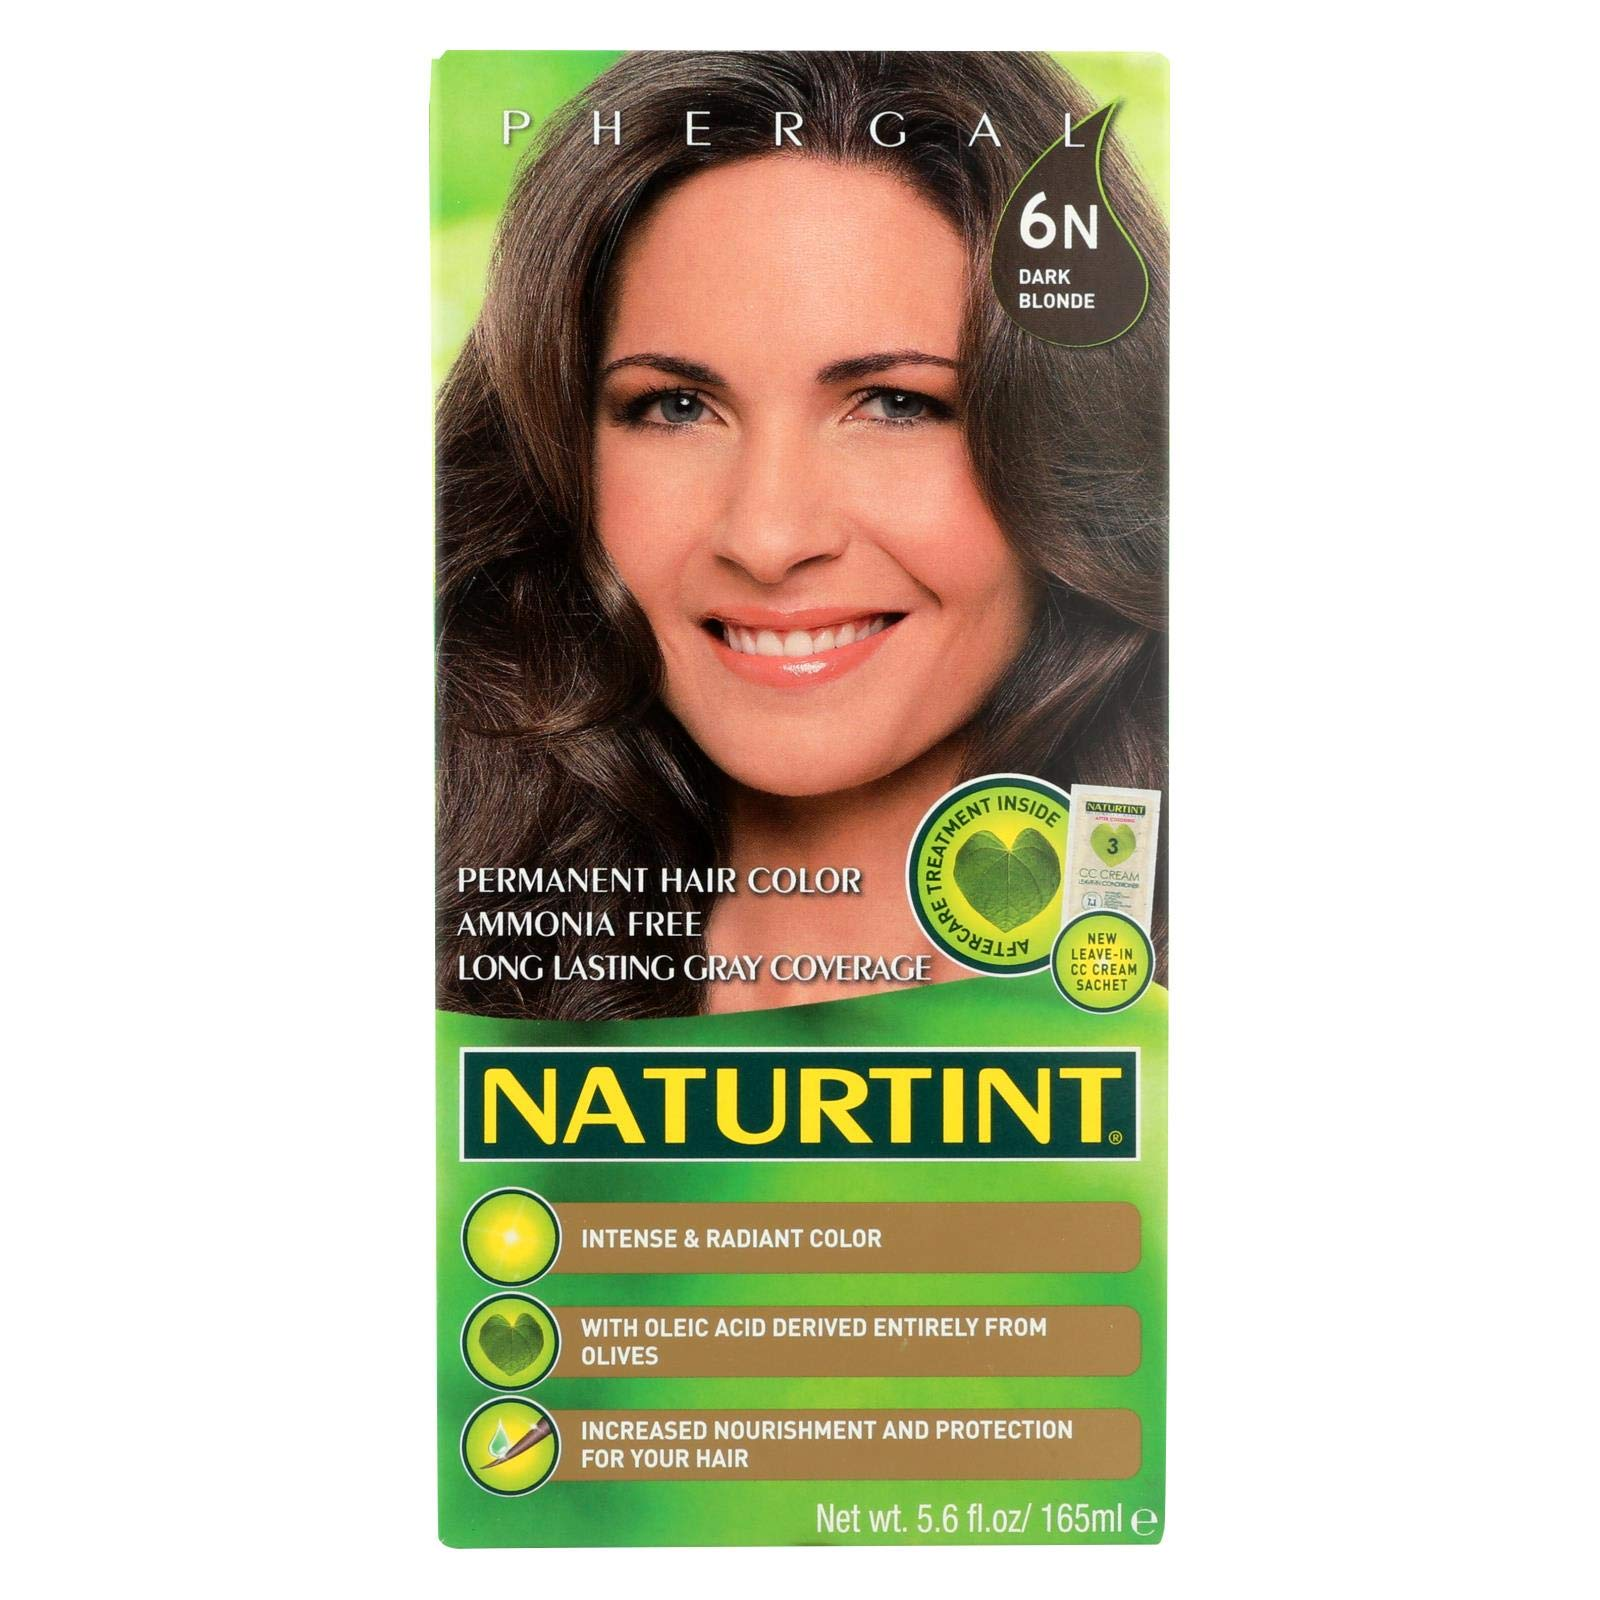 Naturtint Hair Color - Permanent - 6N - Dark Blonde - 5.28 oz (Pack of 4) by Naturtint